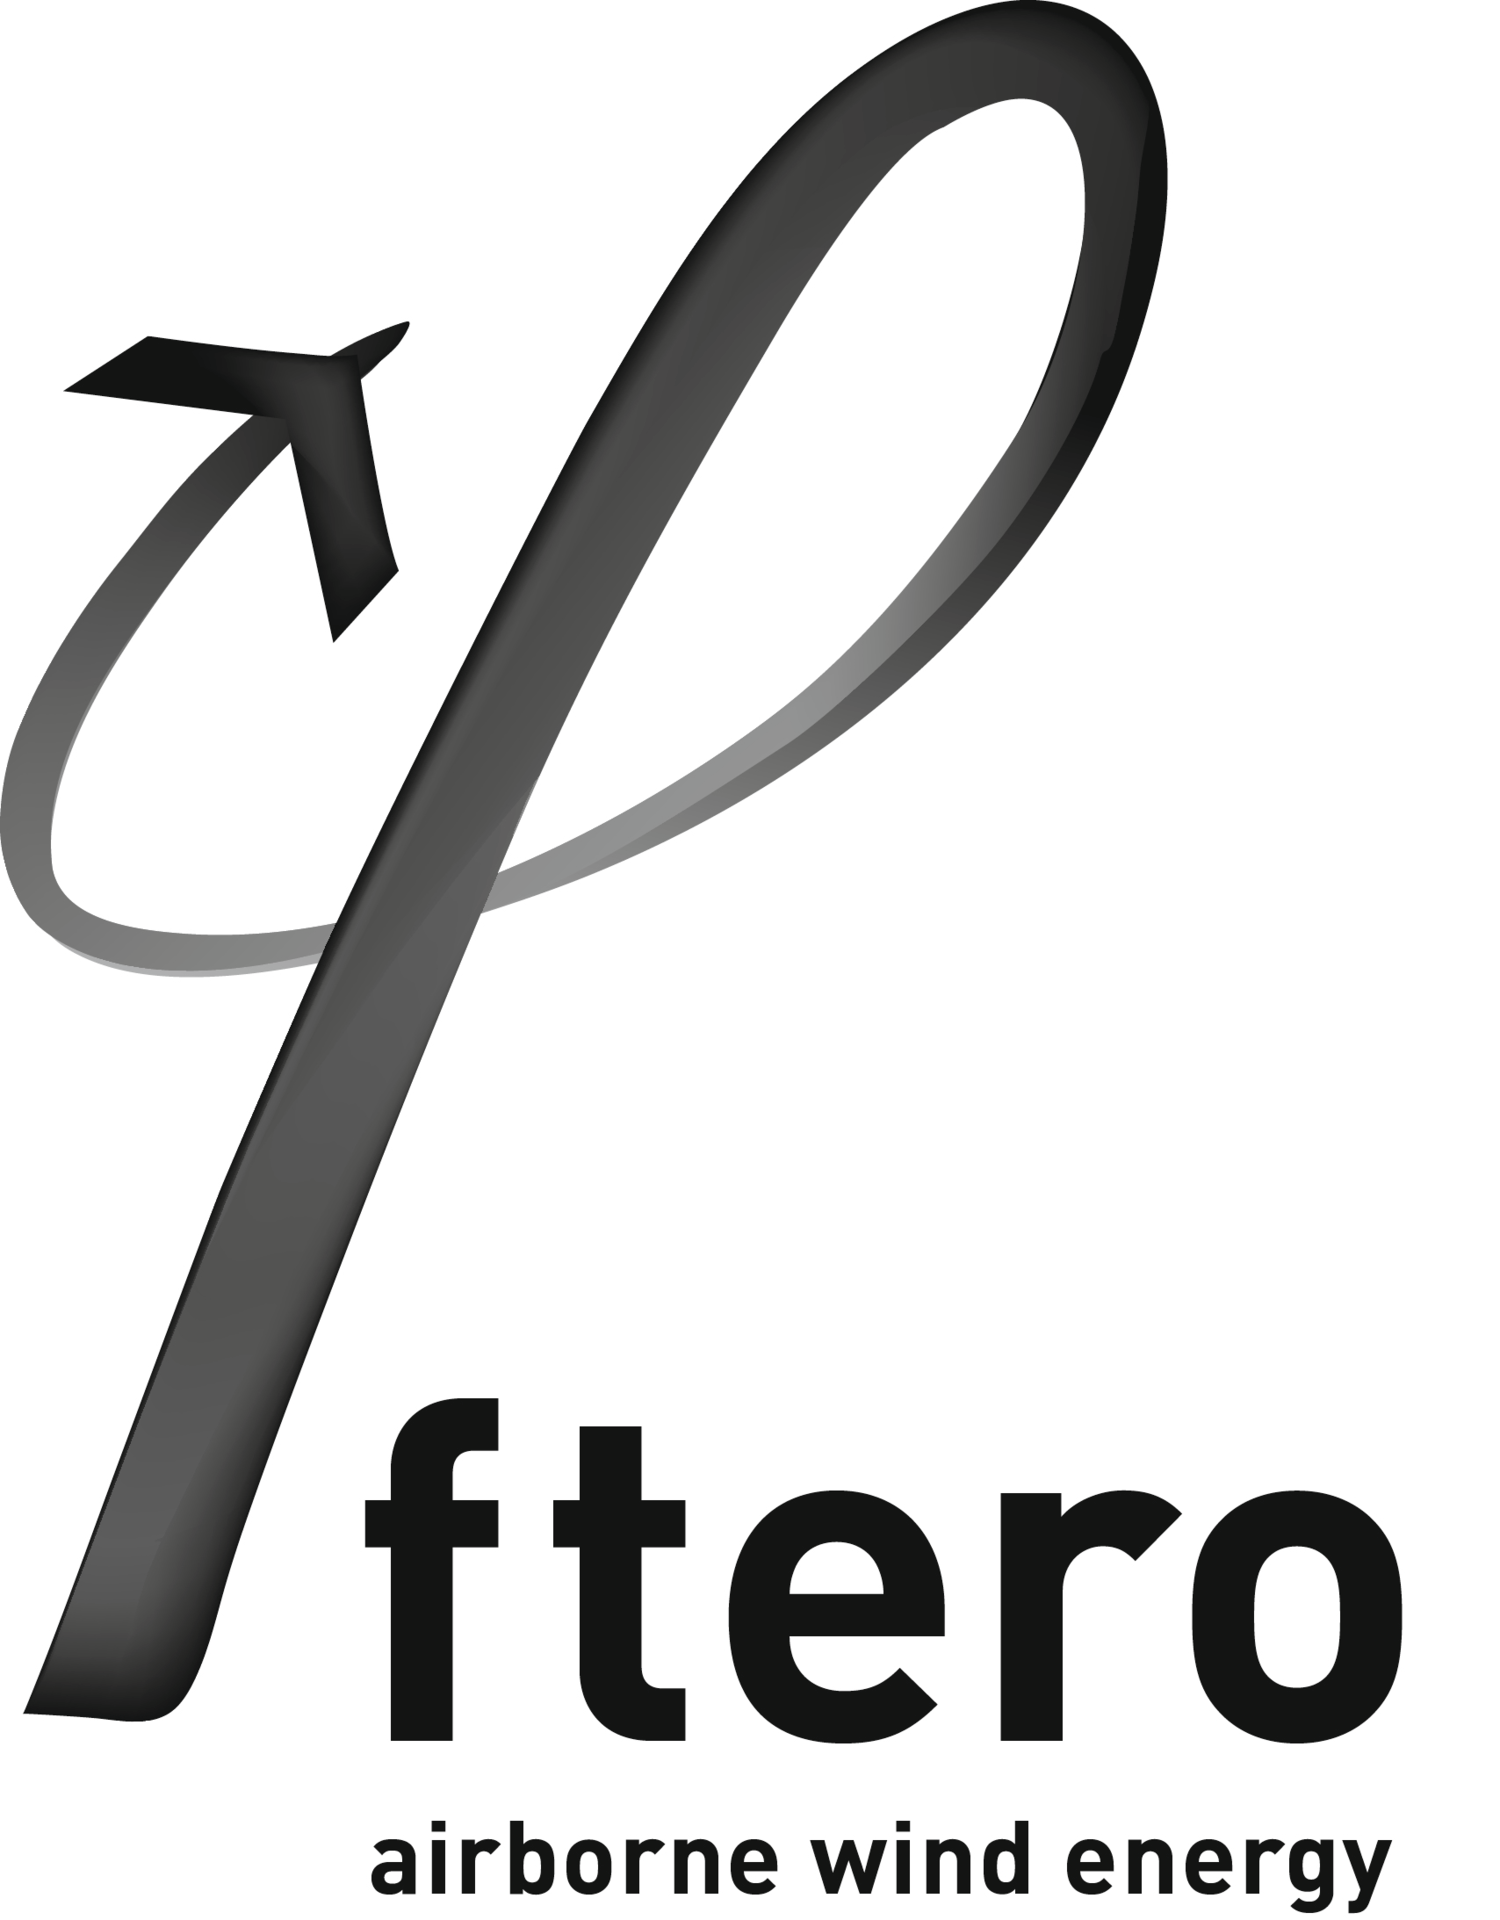 ftero - Airborne Wind Energy – Laboratory of Composite